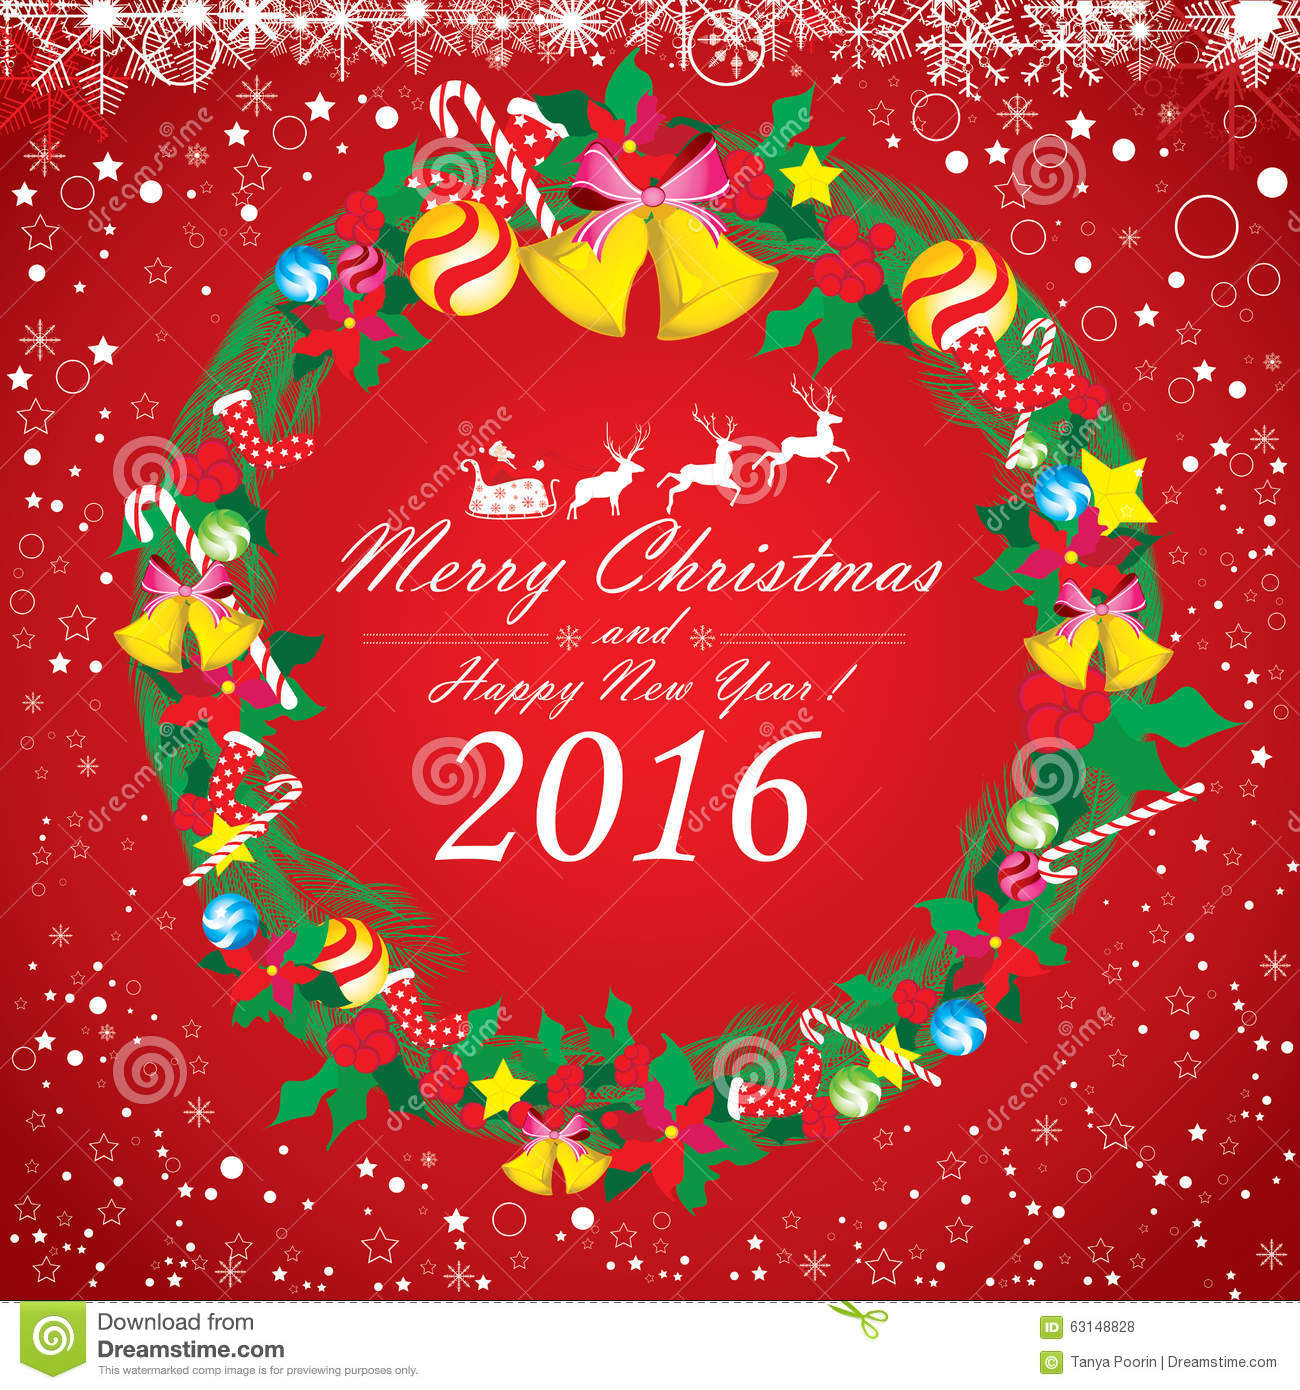 Download Merry Christmas And Happy New Year 2016. Santa Claus And Reindeer. The White Snow And Christmas Accessories On Red Background Stock Vector - Illustration of reindeer, santa: 63148828